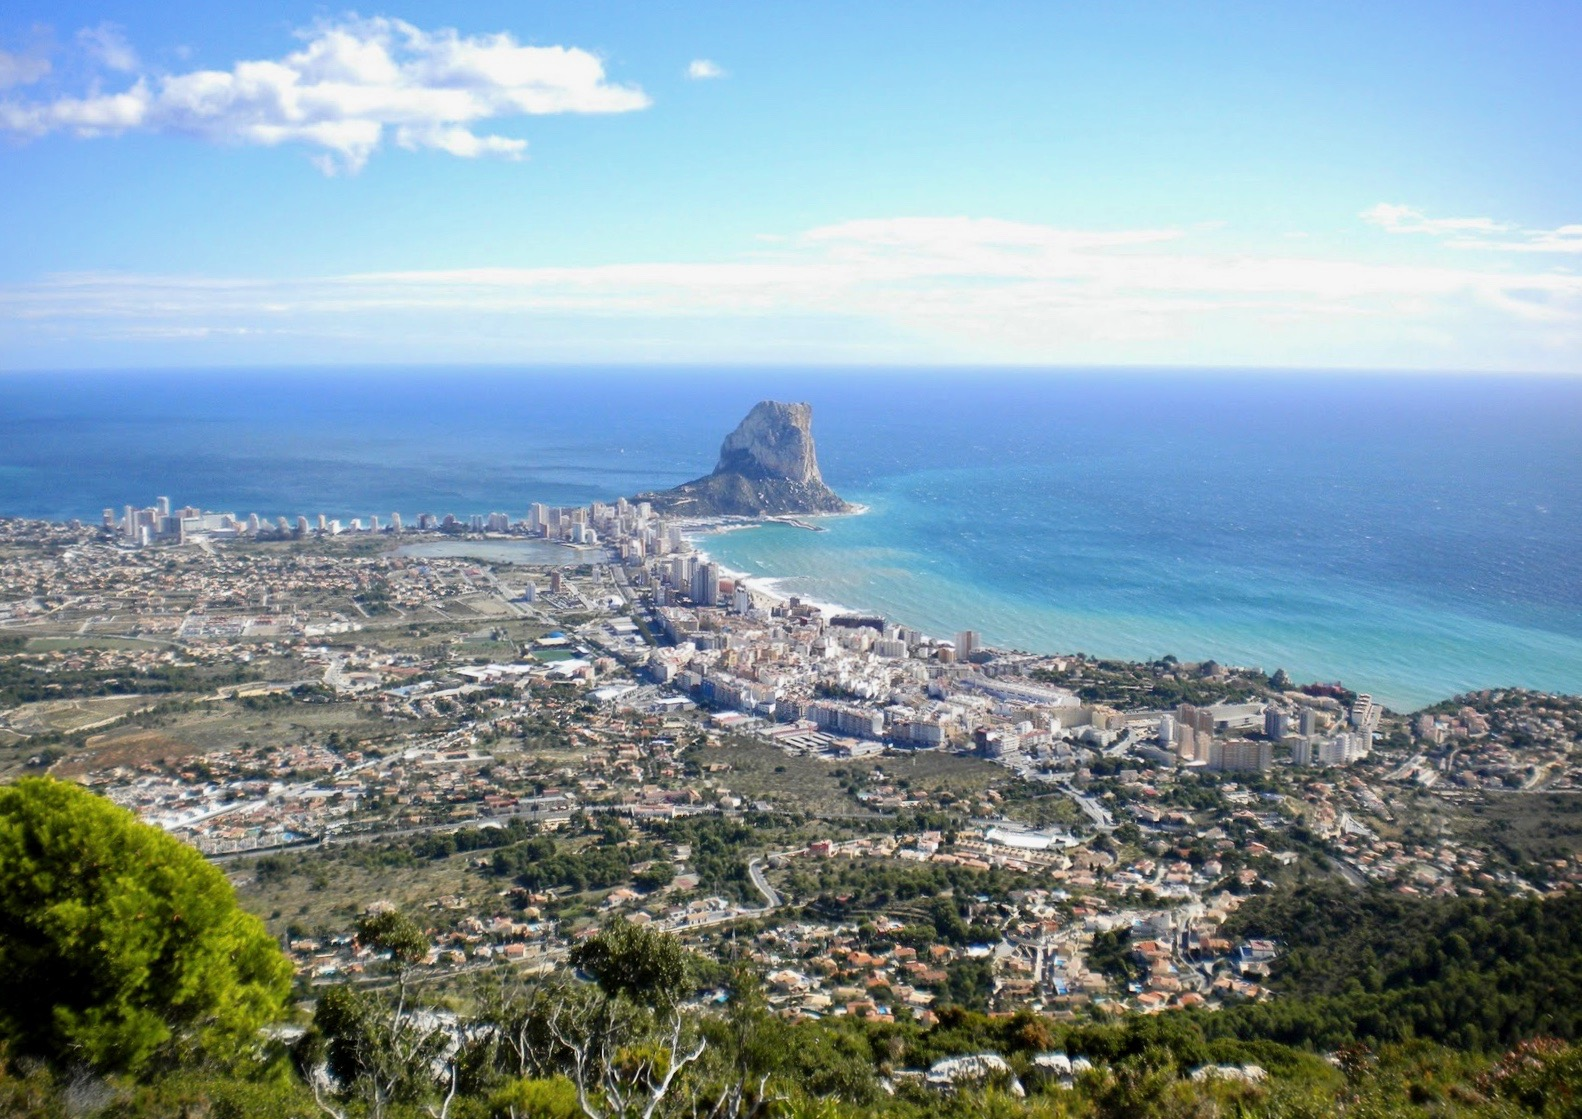 Calp 2020, a strategy for sustainable tourism